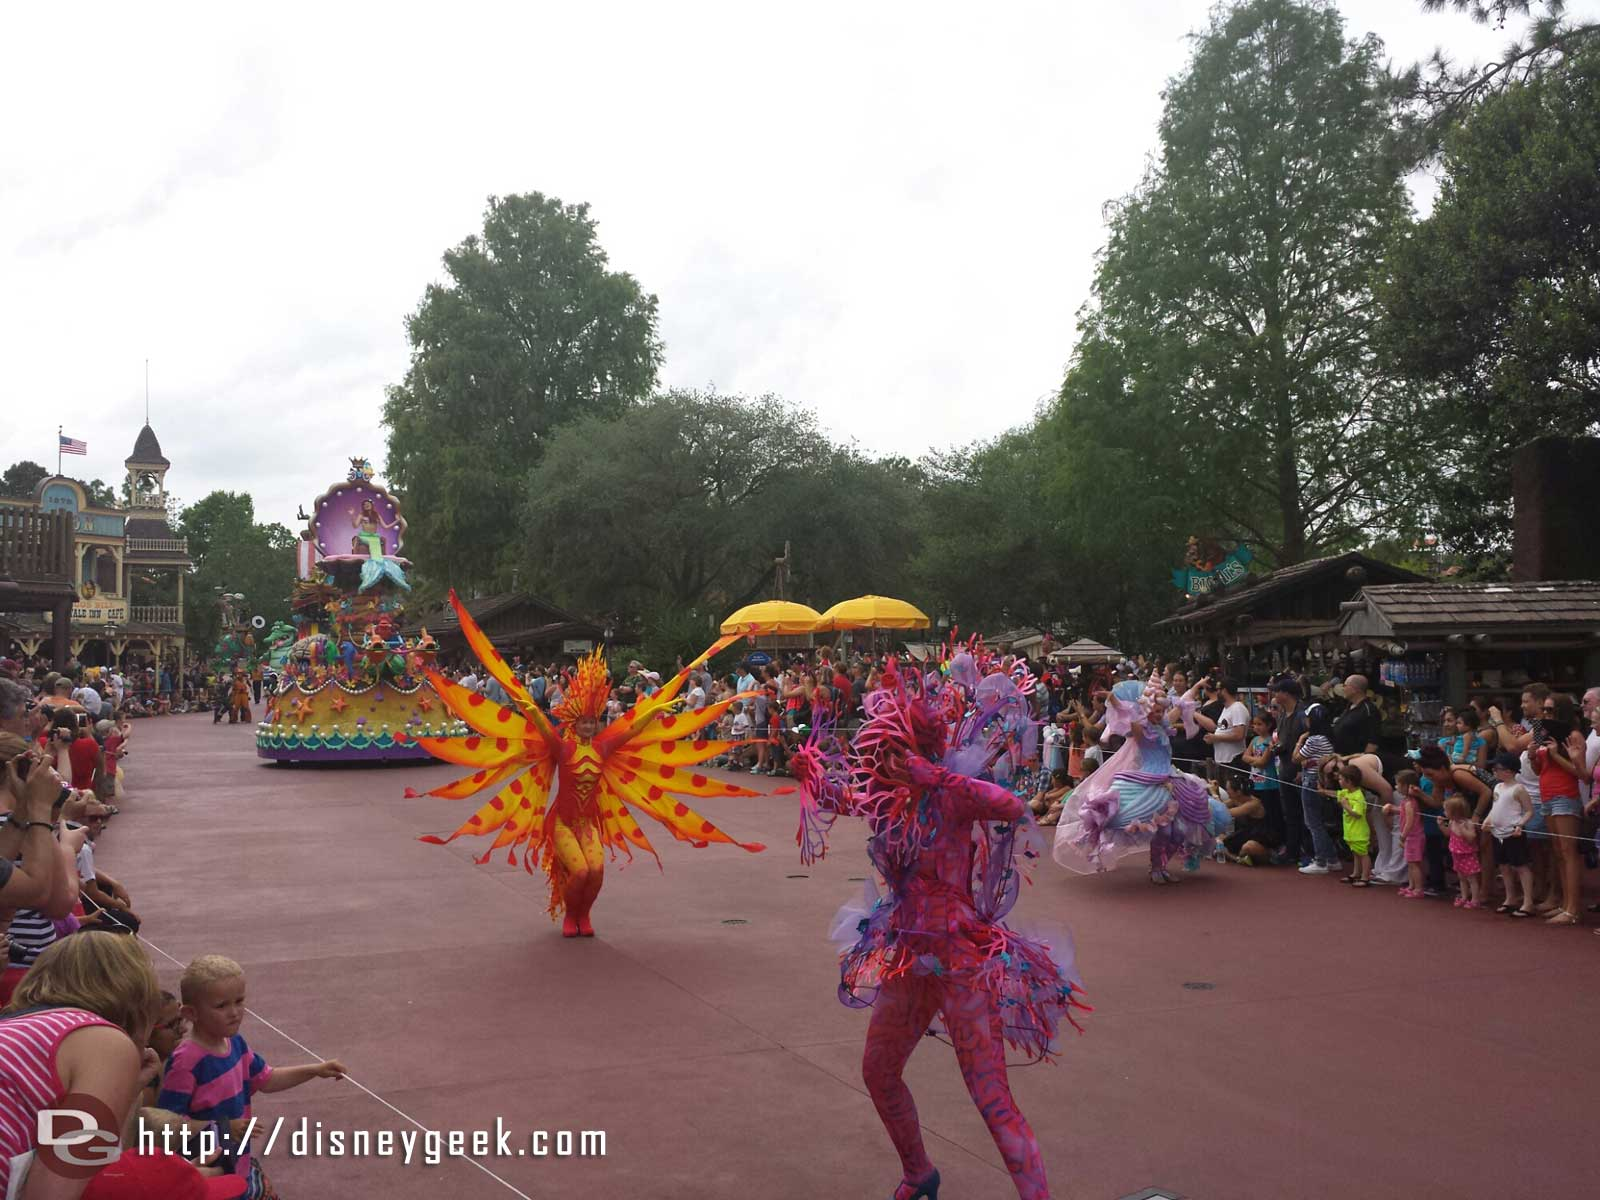 The Little Mermaid sea creatures – Festival of Fantasy parade #WDW Magic Kingdom